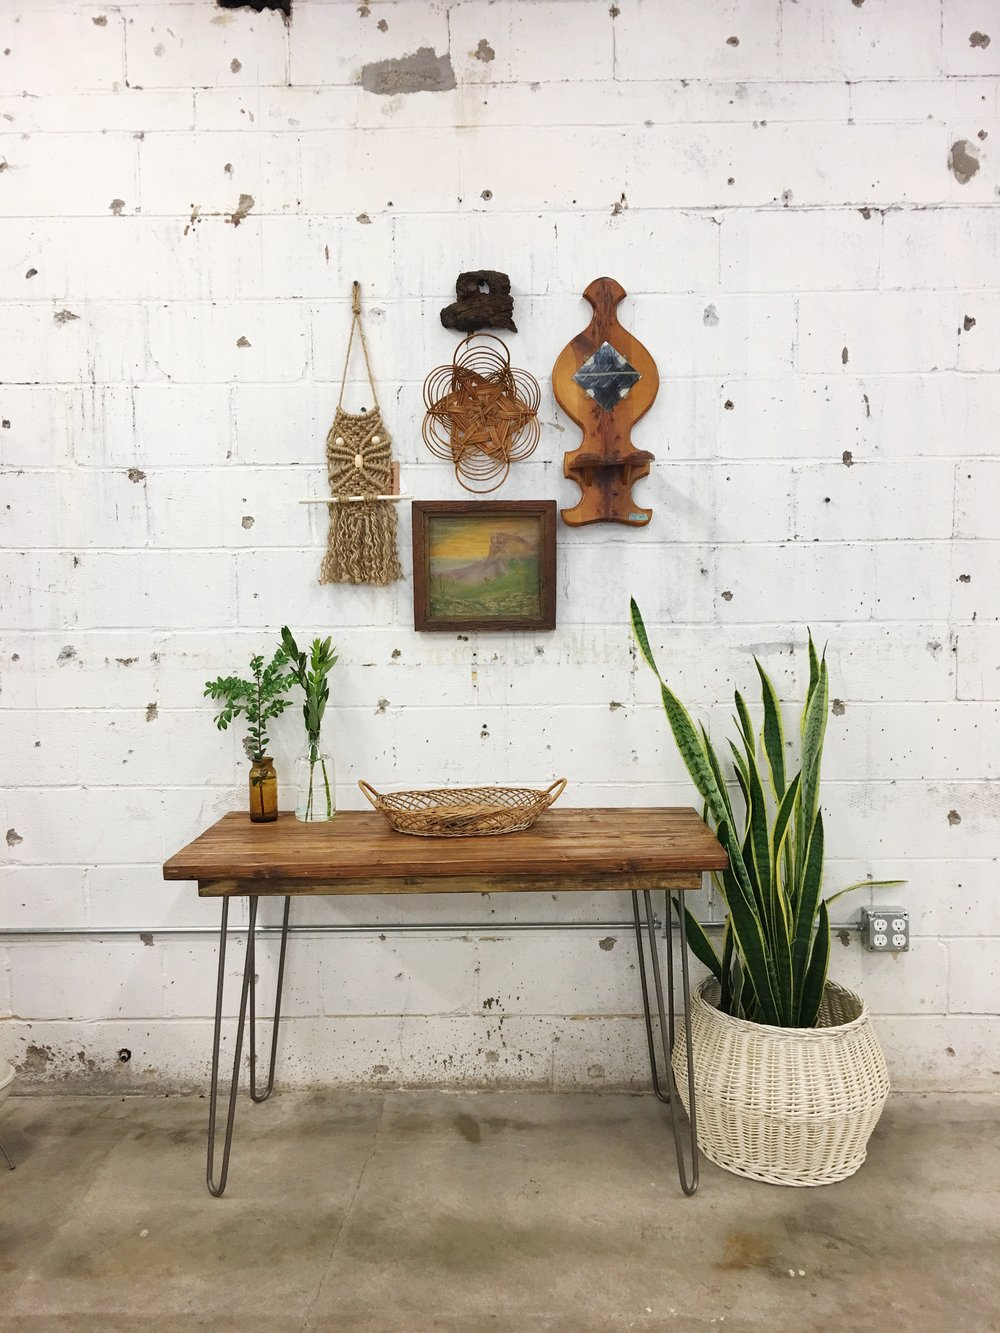 We've hung a variety of objects on the wall including a macrame owl by  House Sparrow Fine Nesting , a piece of driftwood, a basket, a vintage oil painting and a wooden display rack/mirror. This gallery wall may be unconventional, but I sure as hell can't stop looking at it.